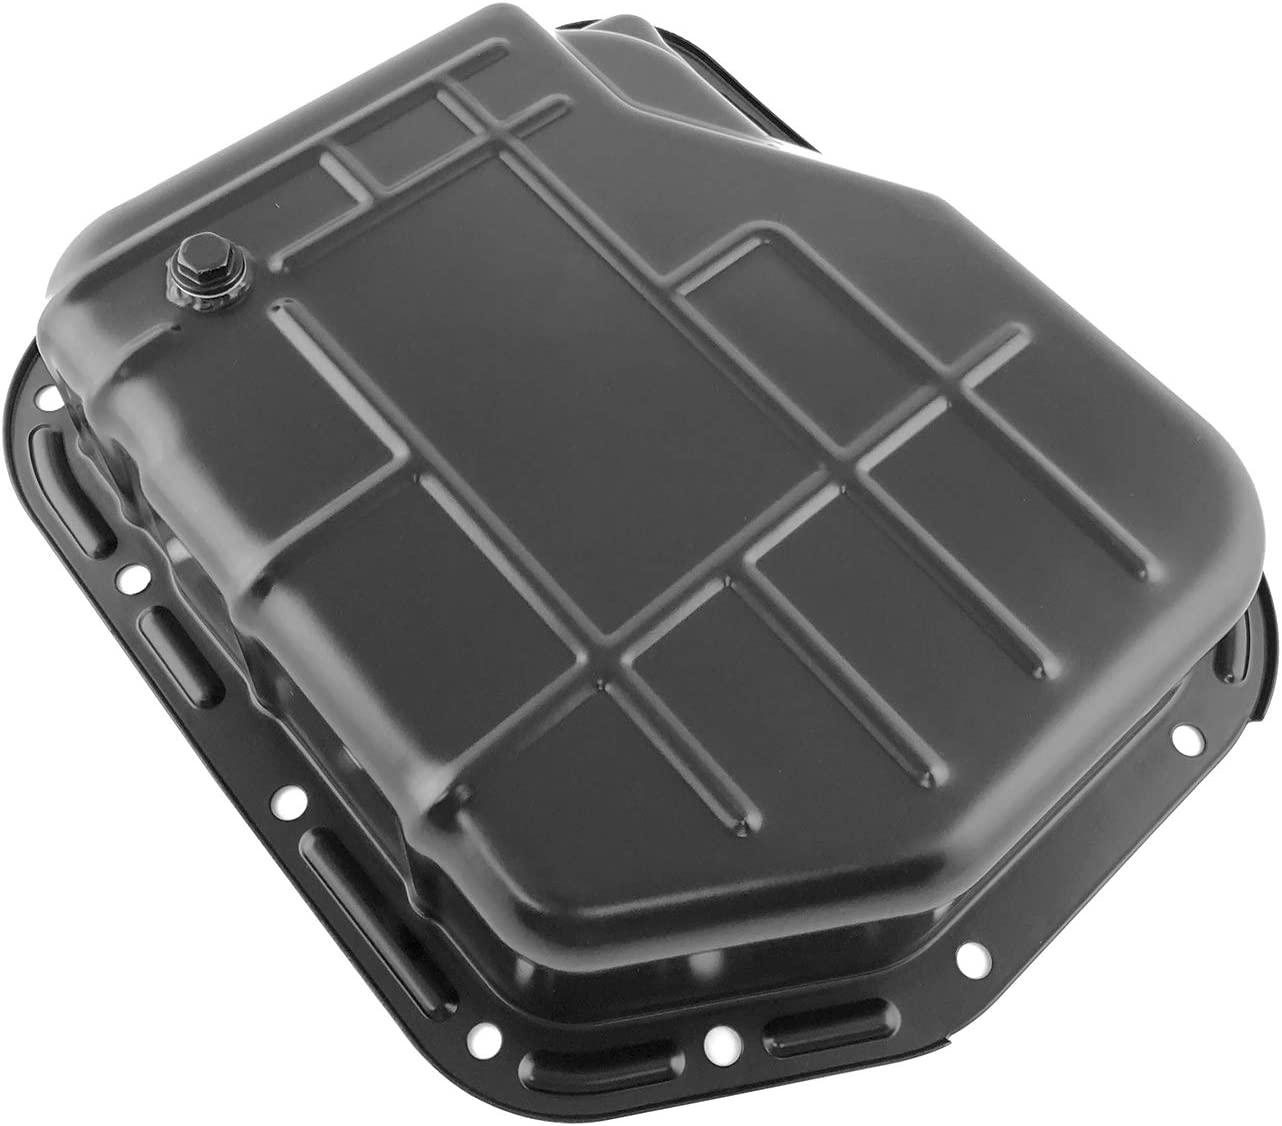 Beasteel Steel Transmission Oil Pan with Fees free!! Plug 98-04 Fits G Drain Brand Cheap Sale Venue